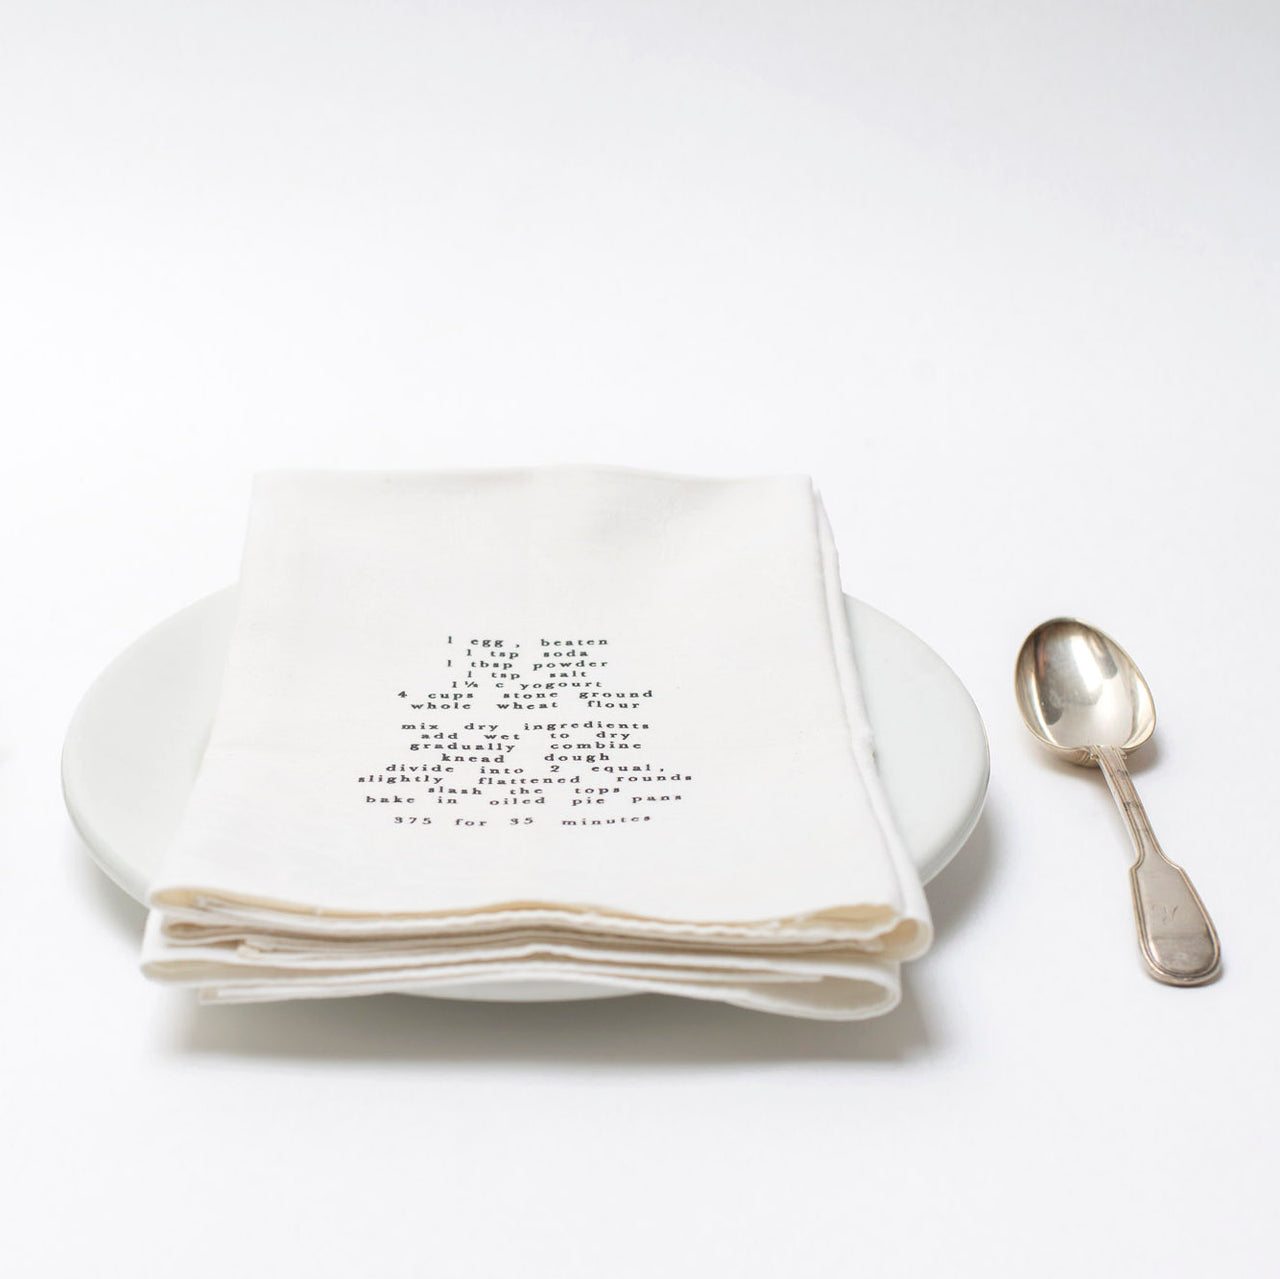 vintage damask napkins with recipe